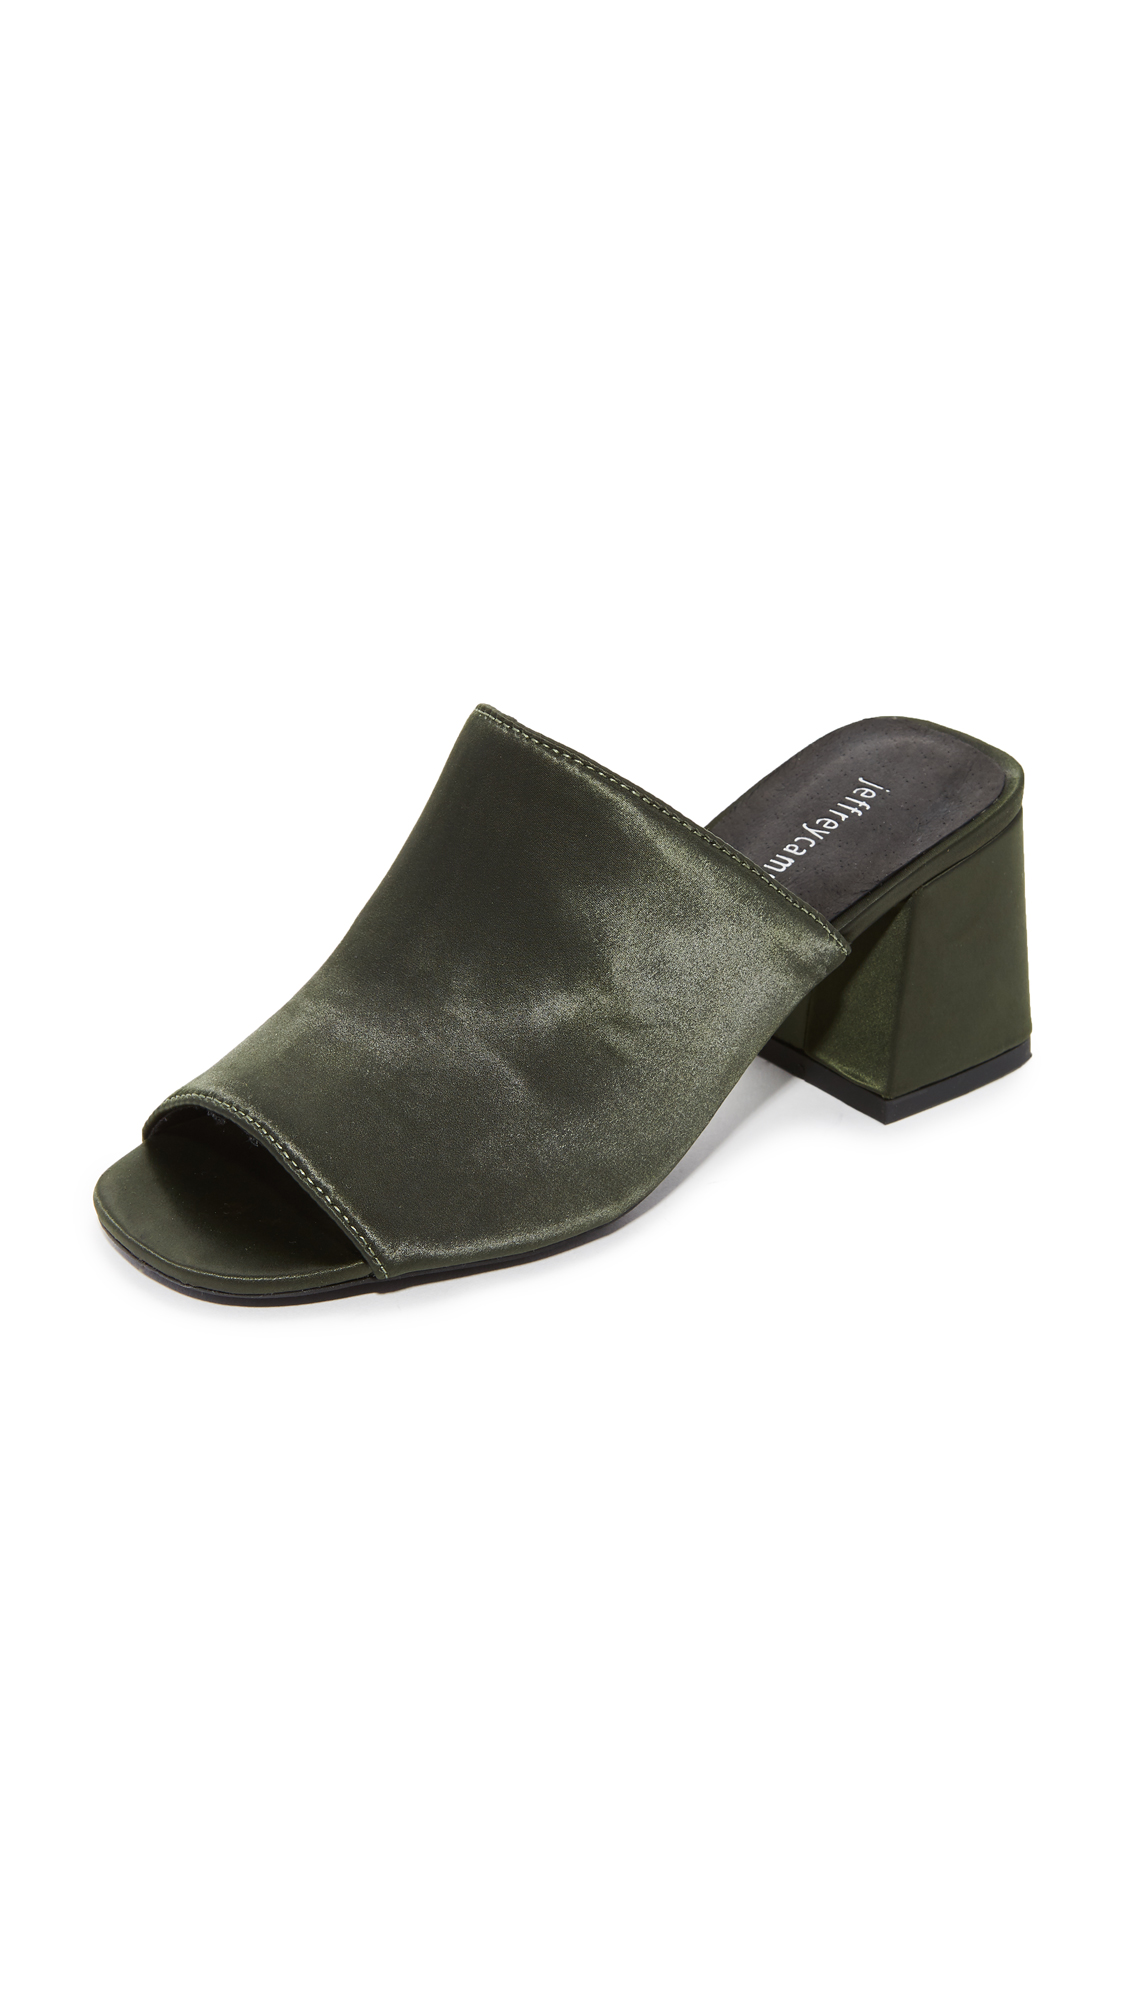 Jeffrey Campbell Perpetua Mules - Olive